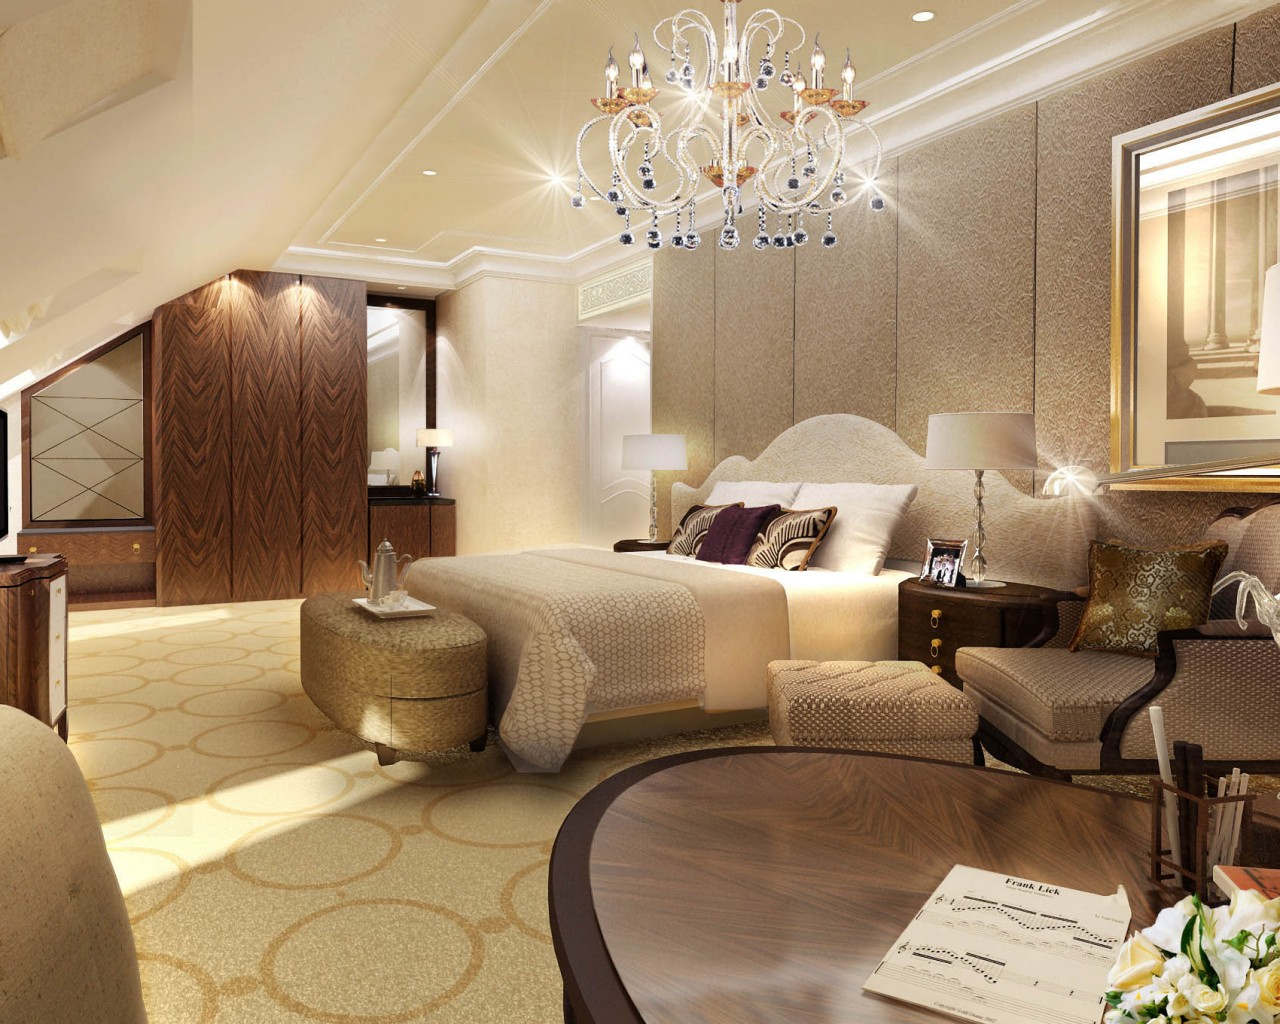 The Hotel Nikol'skaya Kempinski Moscow continues the Kempinki's renowned European flair.